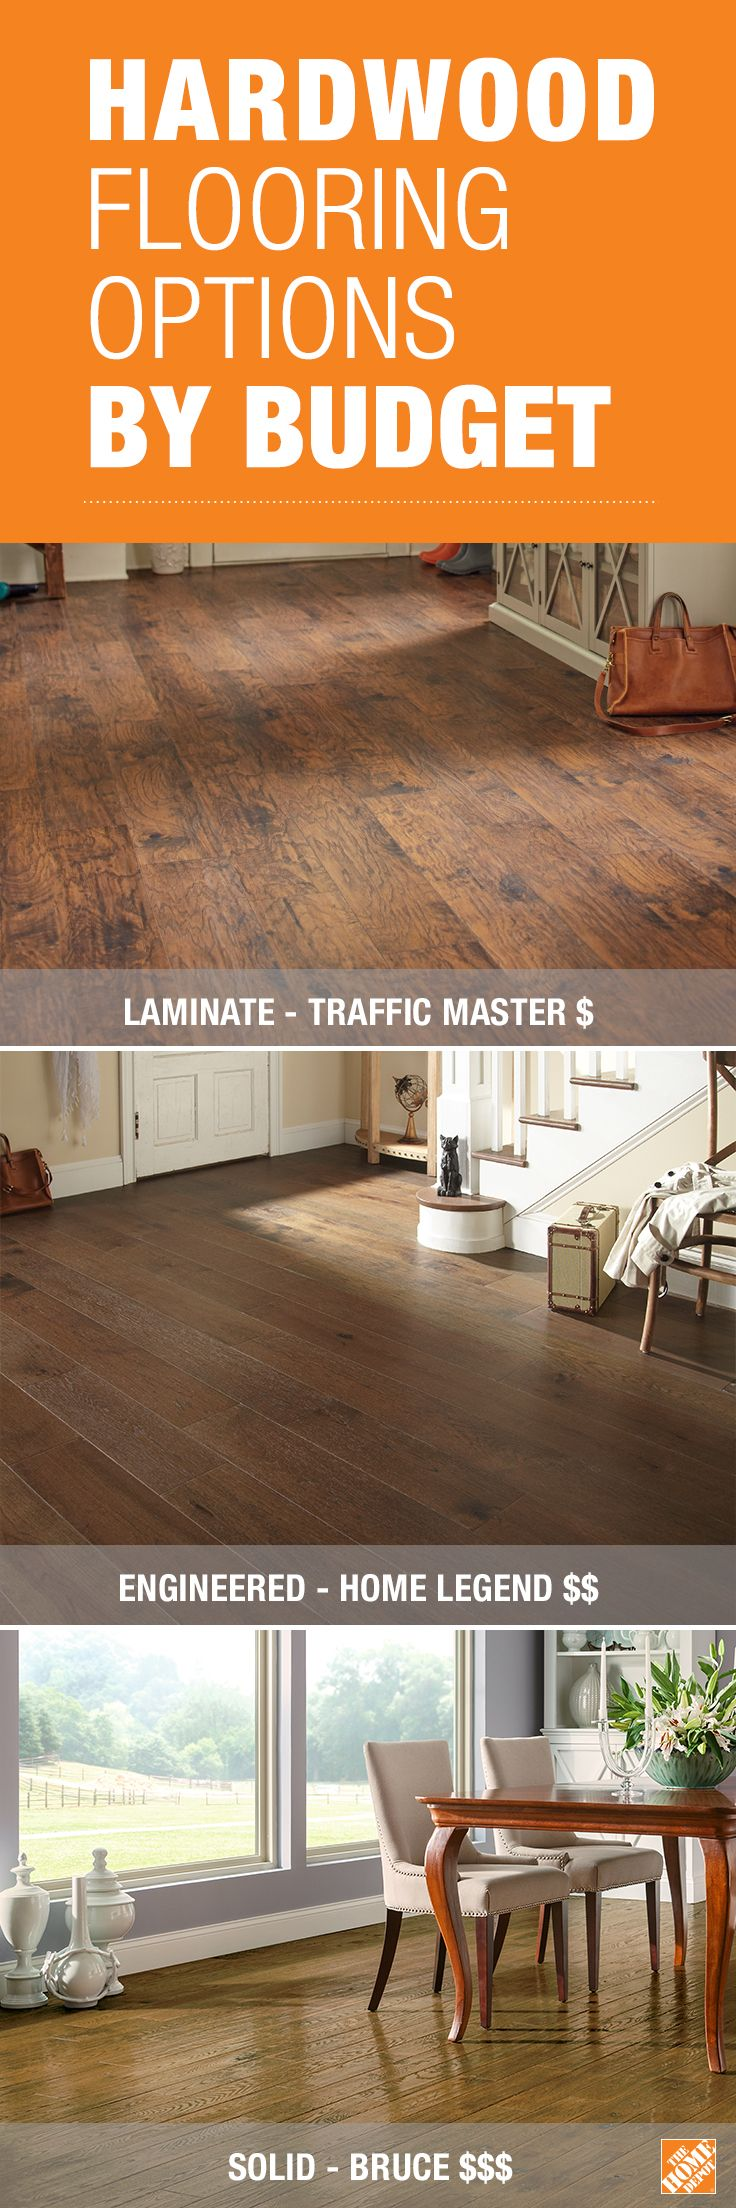 The New Types Of Laminate Flooring Give You An Authentic Wood Look That S Very Affordable Engineered Hardwood Costs A Little